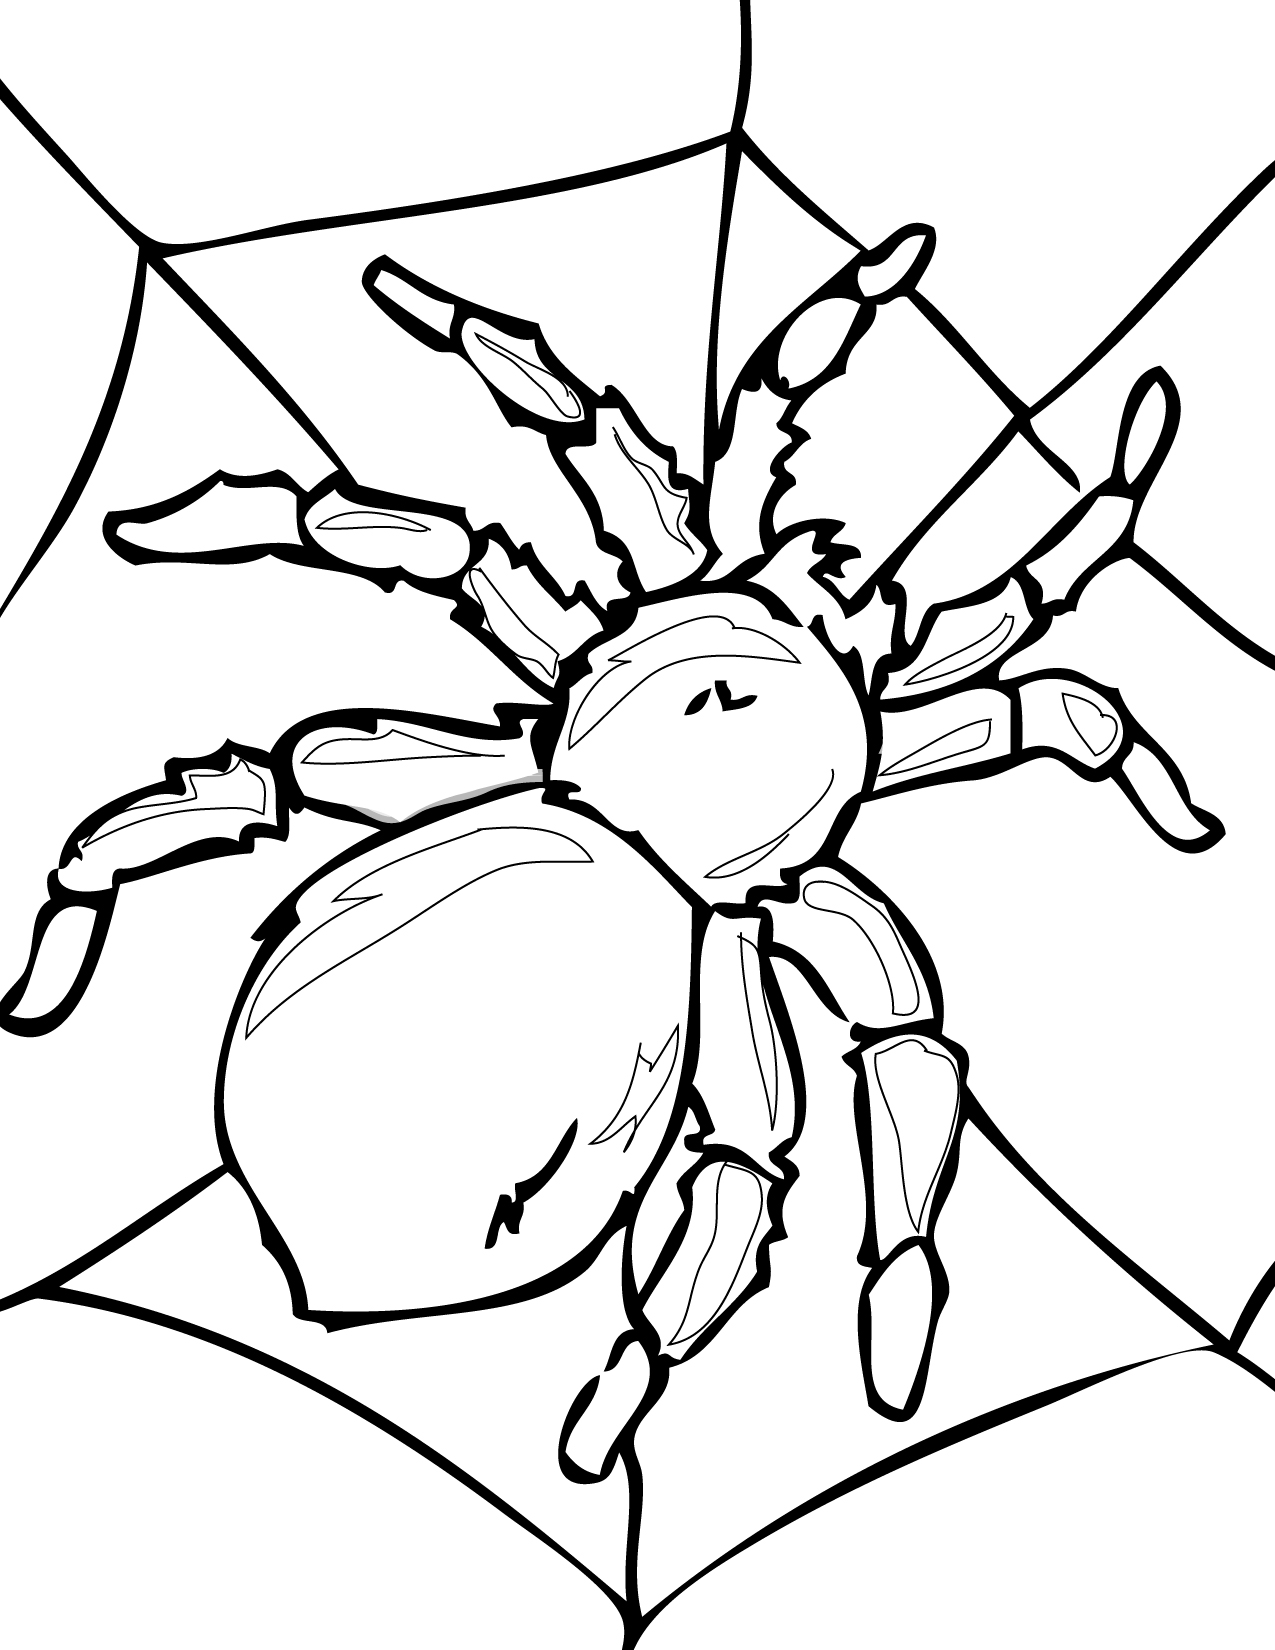 coloring printable spiders spider coloring pages to download and print for free printable coloring spiders